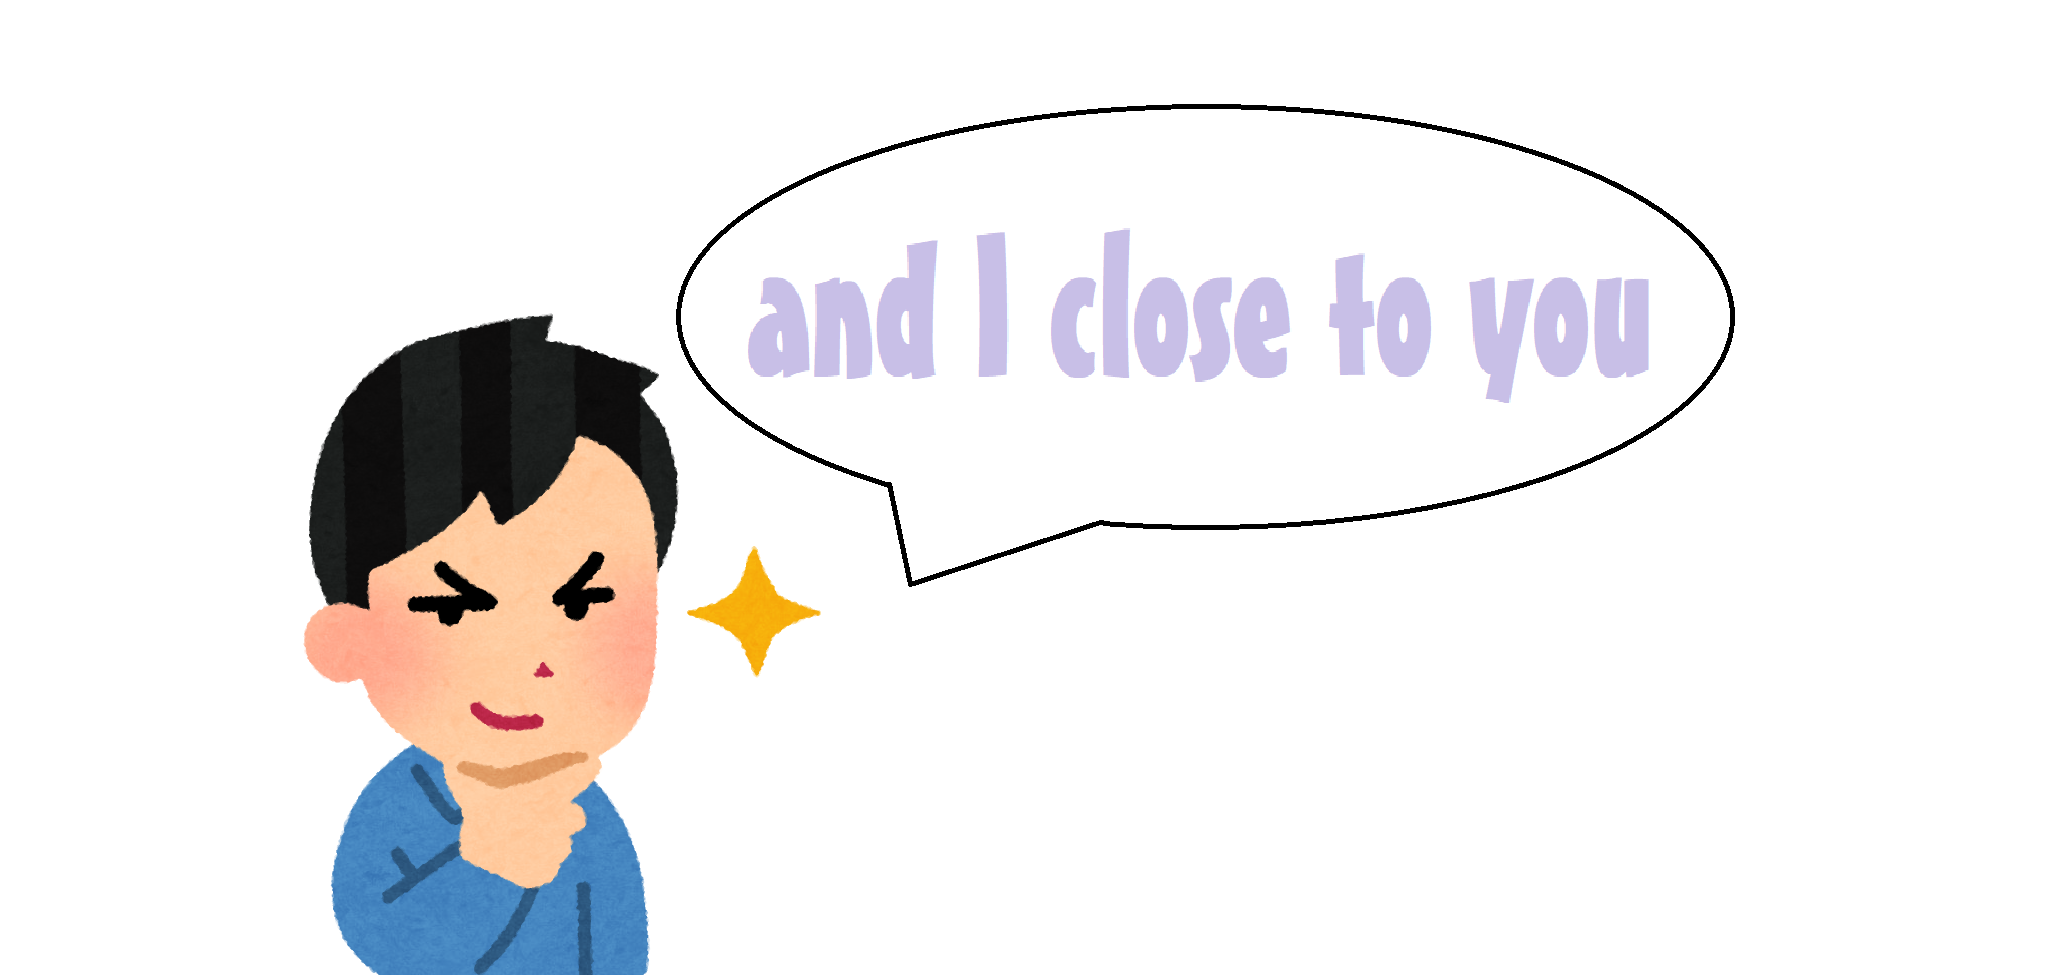 「and I close to you」のイメージ